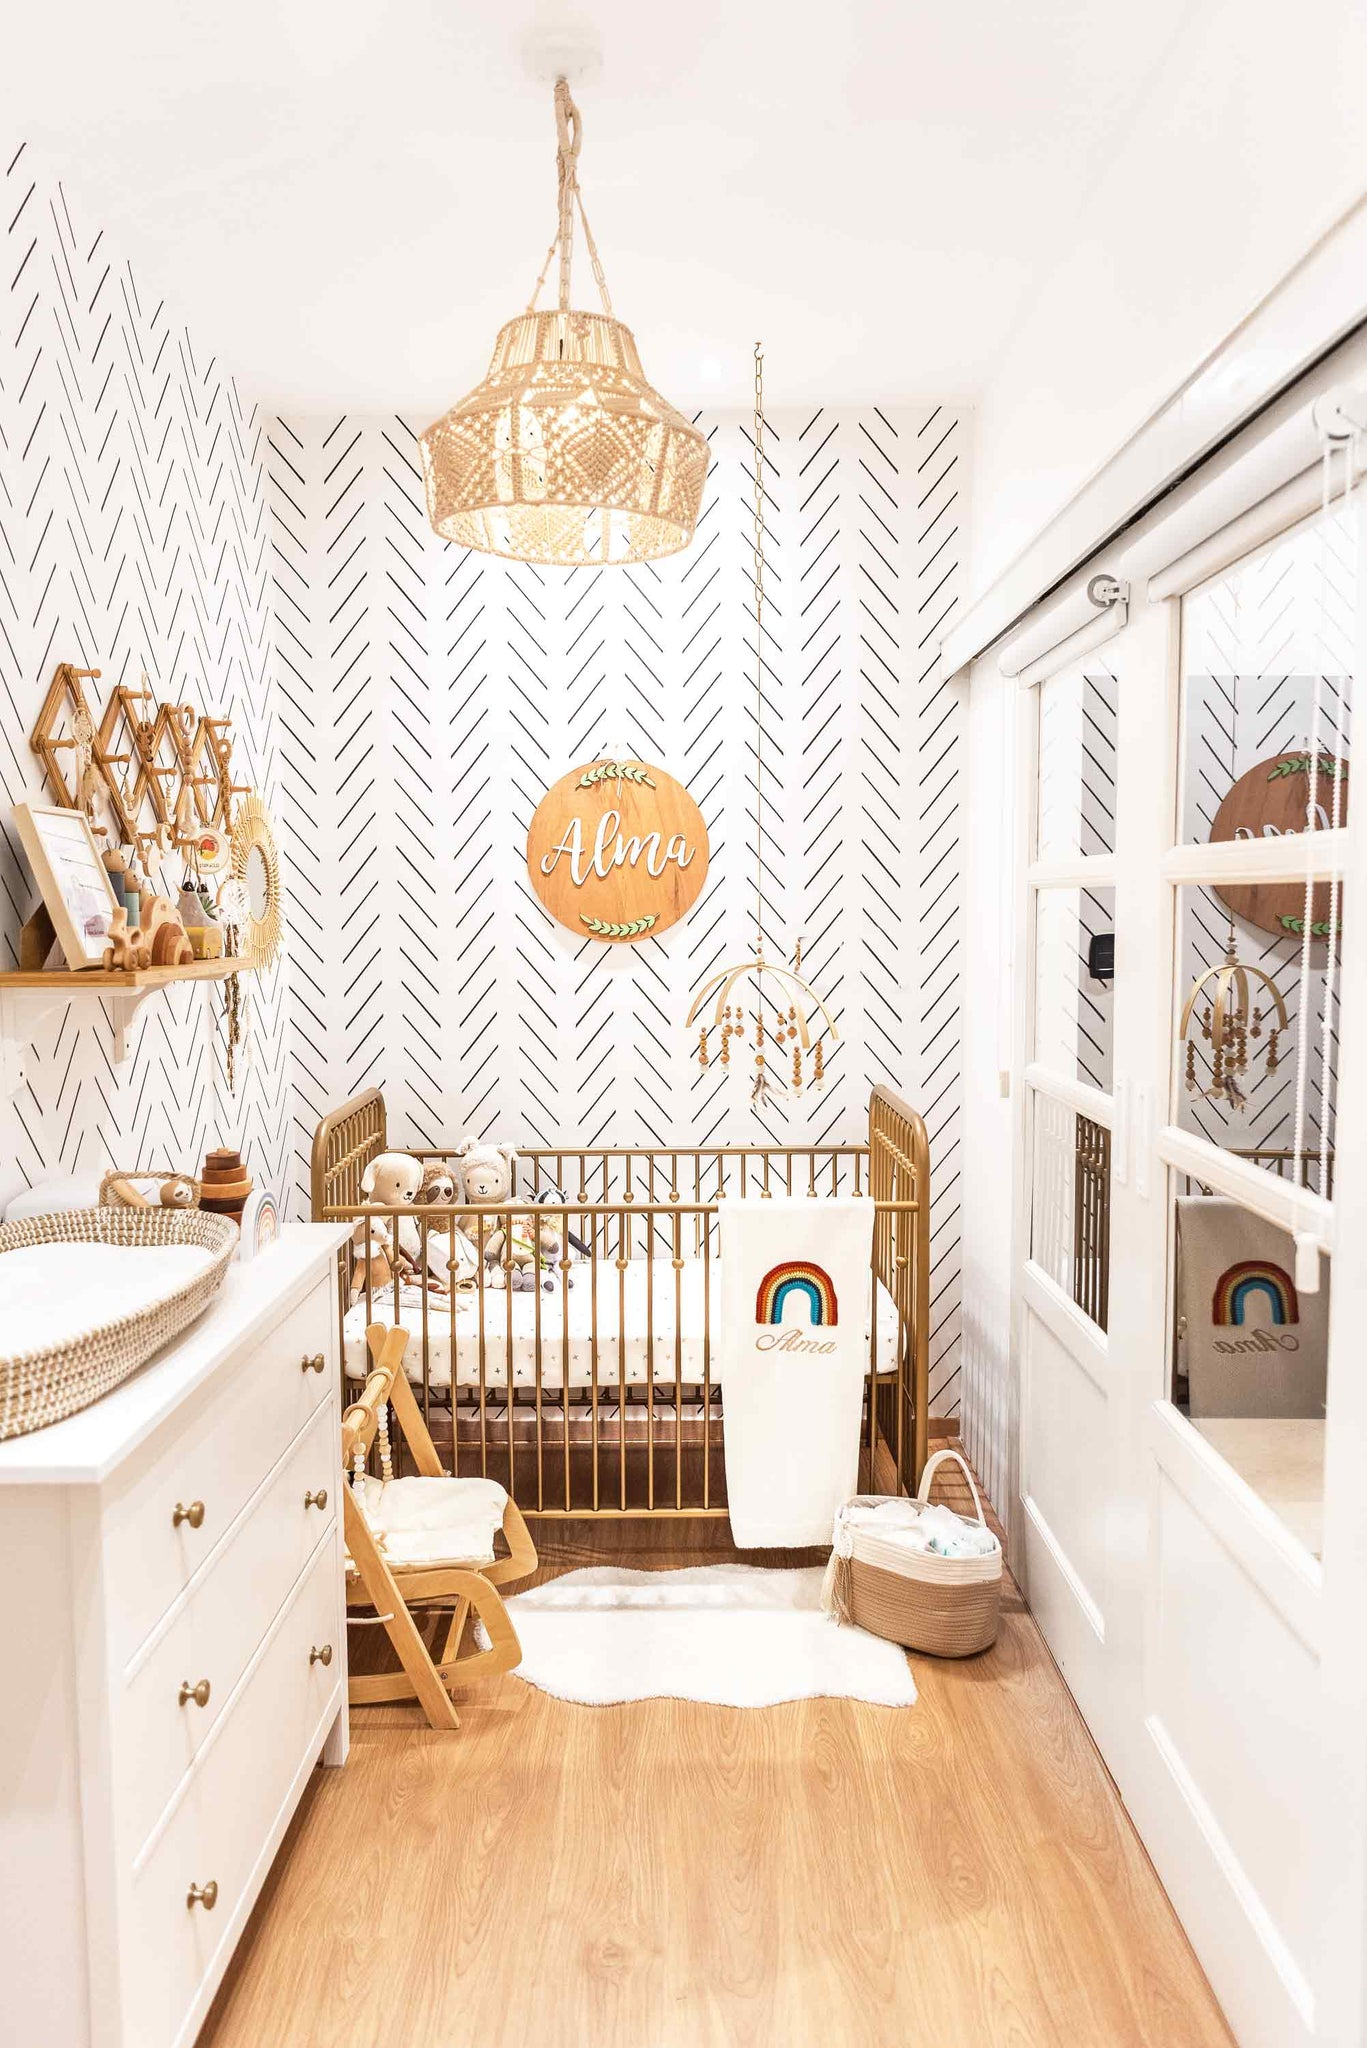 Bohemian style baby girl nursery with white and wood tones, rainbow and animal theme decor and brass color crib